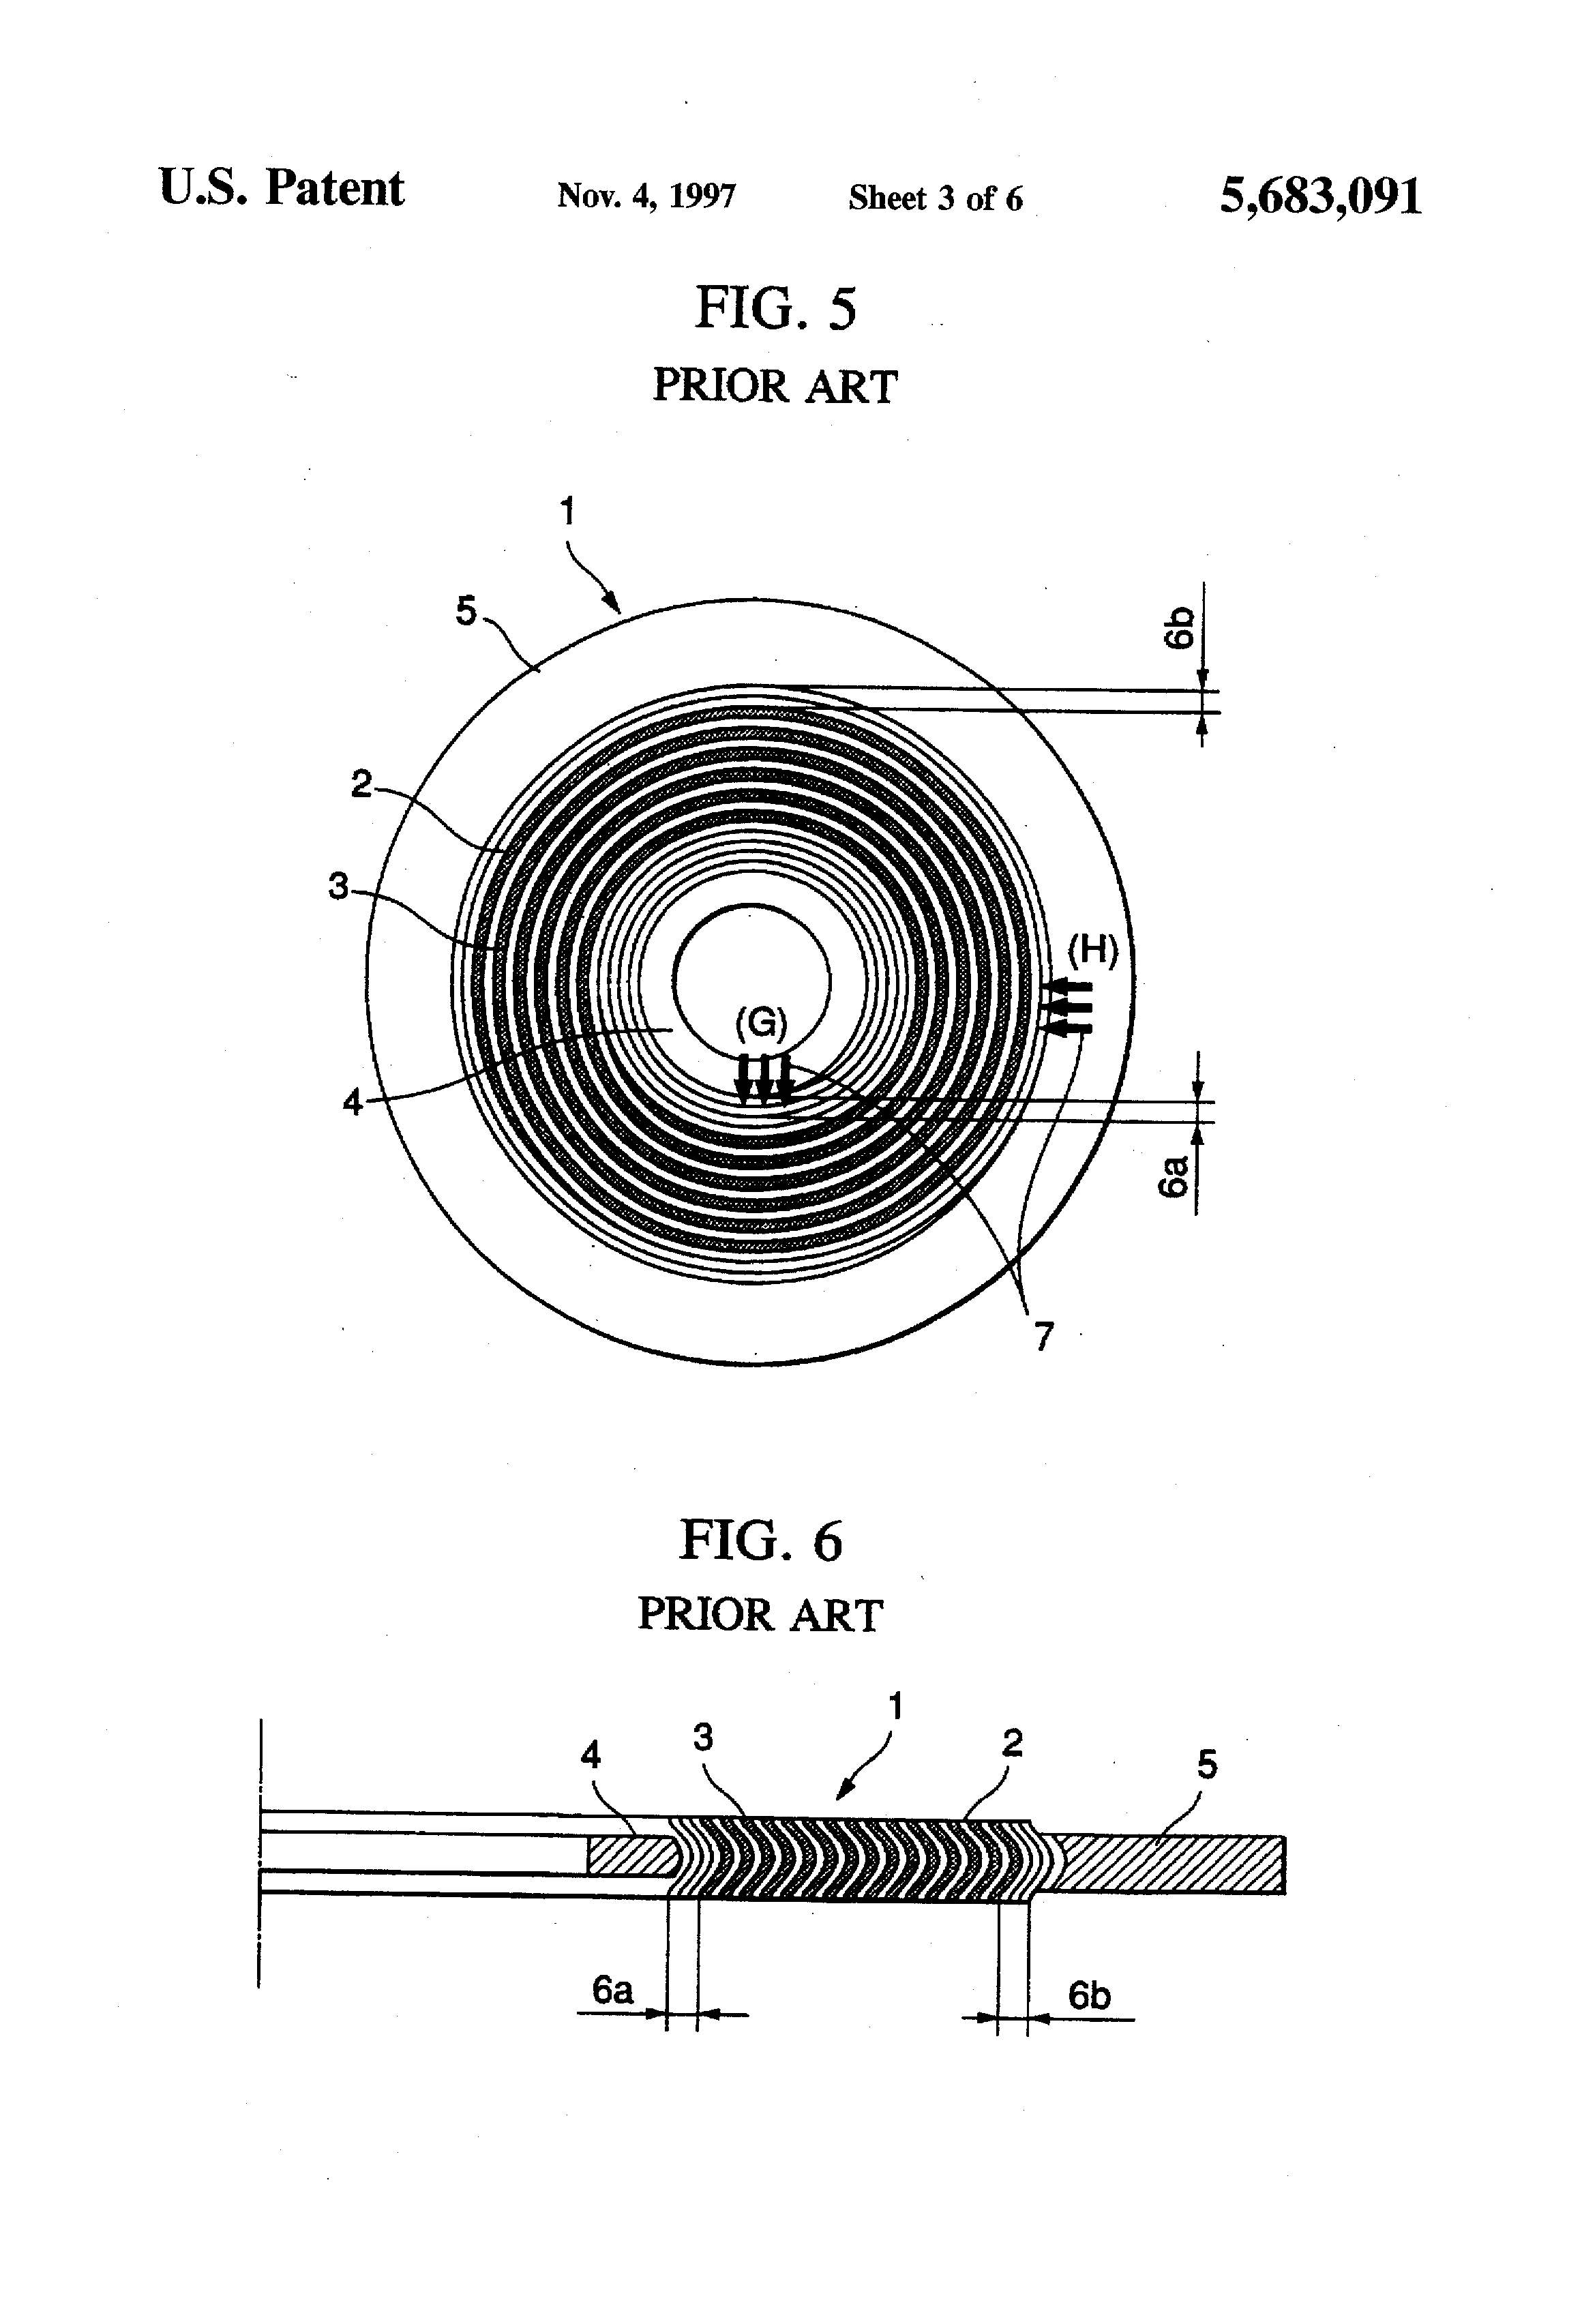 spiral wound gasket cross section. patent drawing spiral wound gasket cross section e